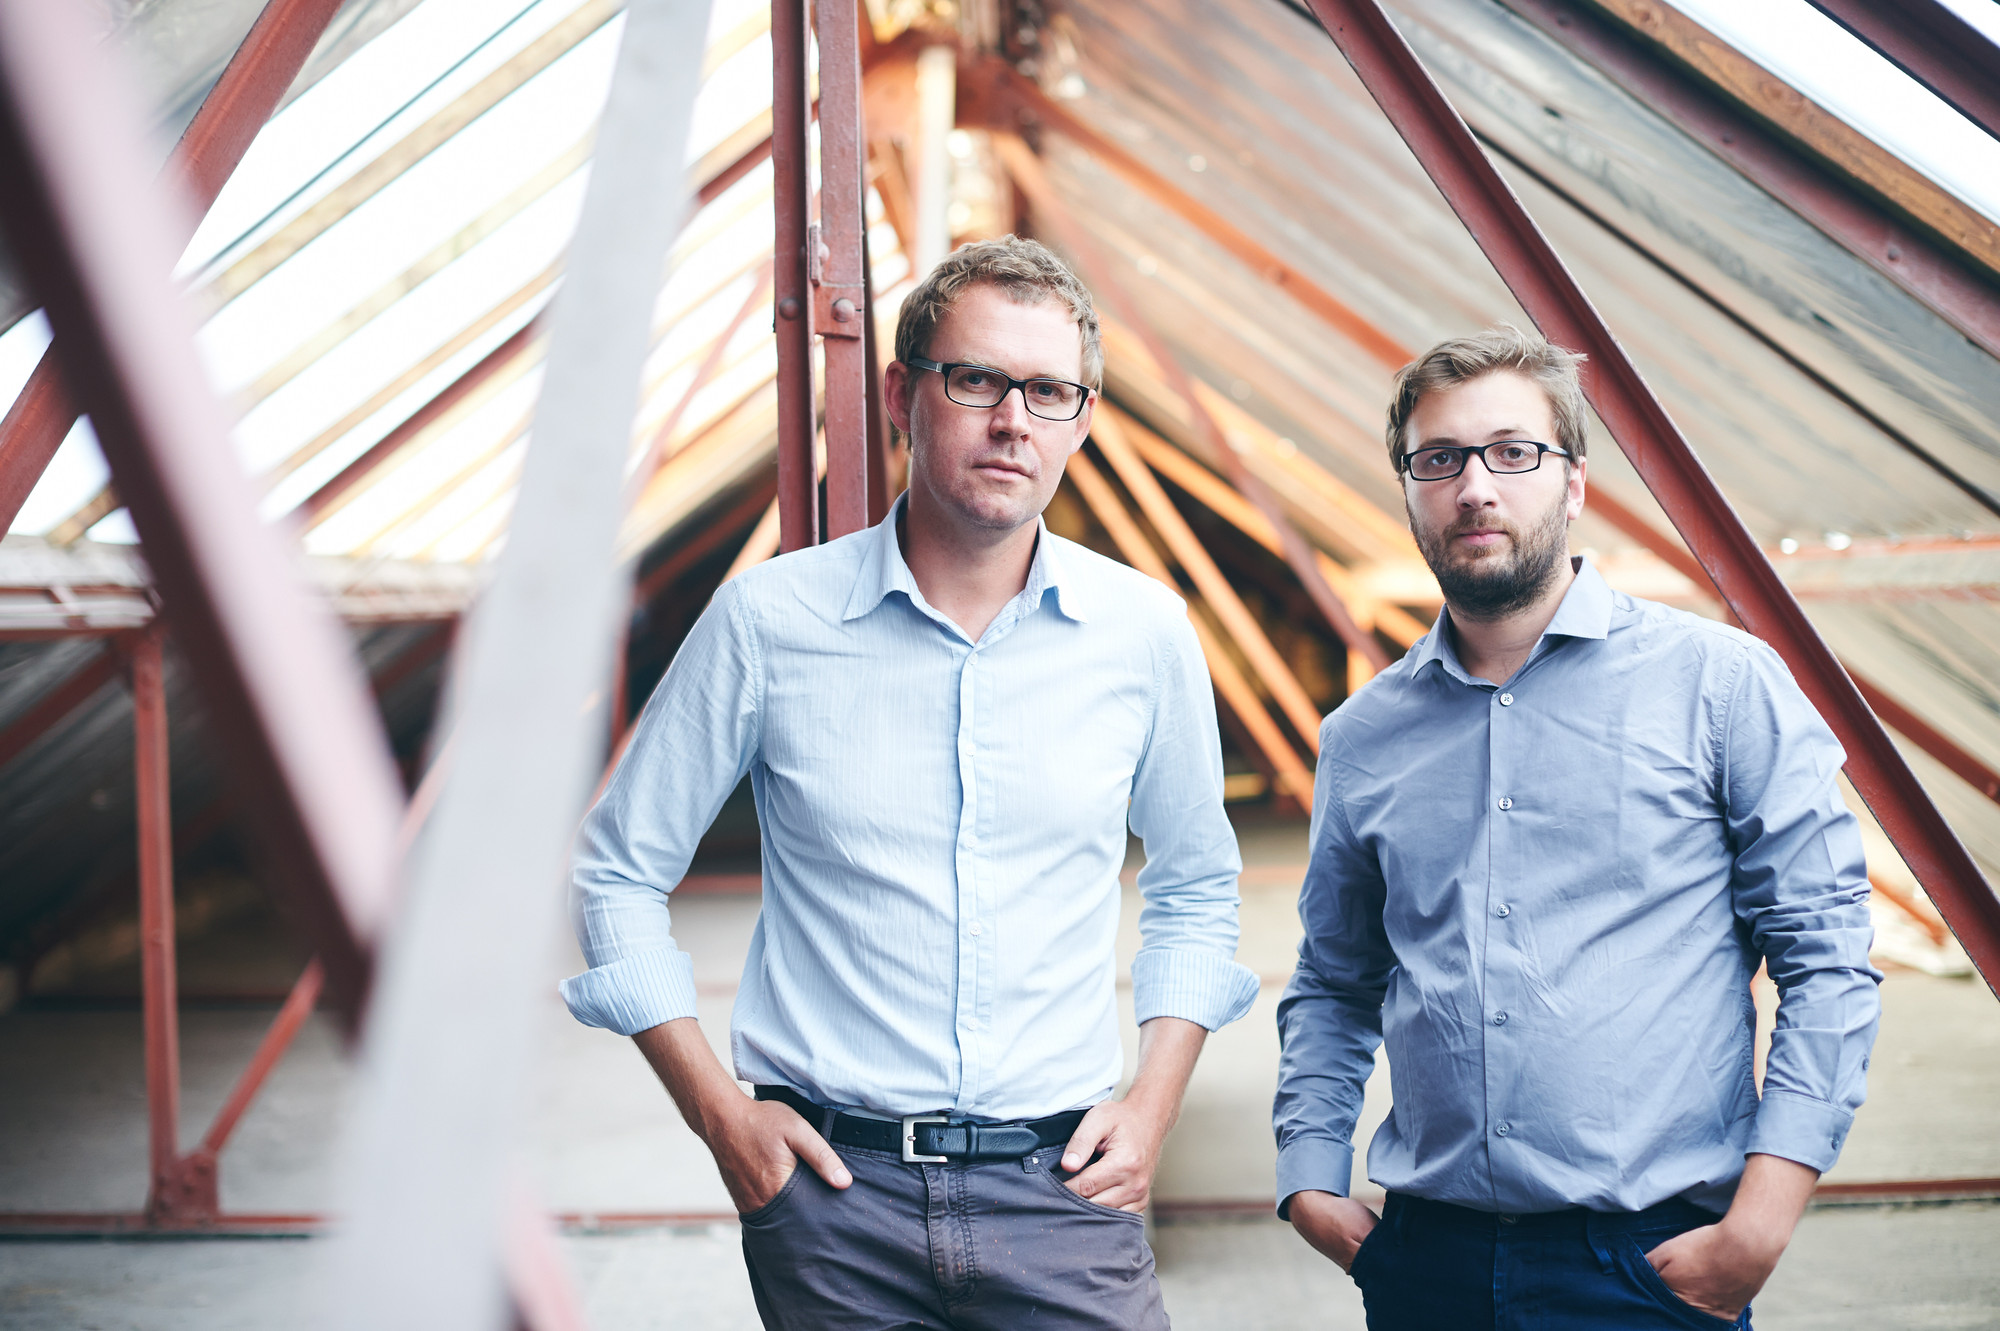 AD Interviews: Rotor, Curators of the Oslo Architecture Triennale, Lionel Devlieger and Maarten Gielen © Benjamin Brolet